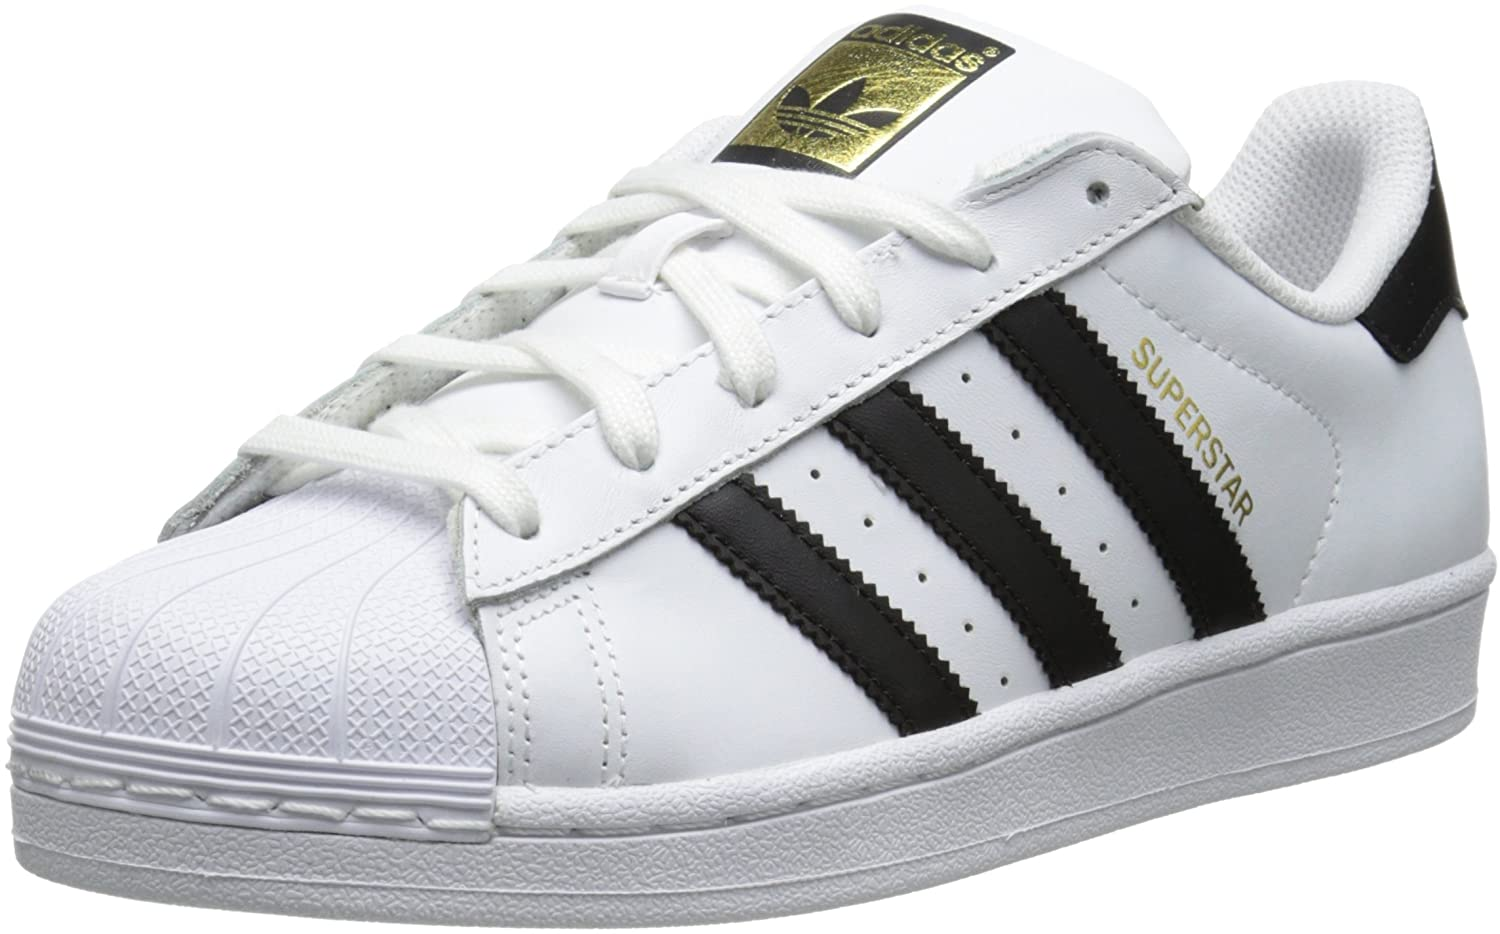 new arrivals eaa2d 58efd Adidas ORIGINALS Women s Superstar Shoe, Footwear  Amazon.ca  Shoes    Handbags